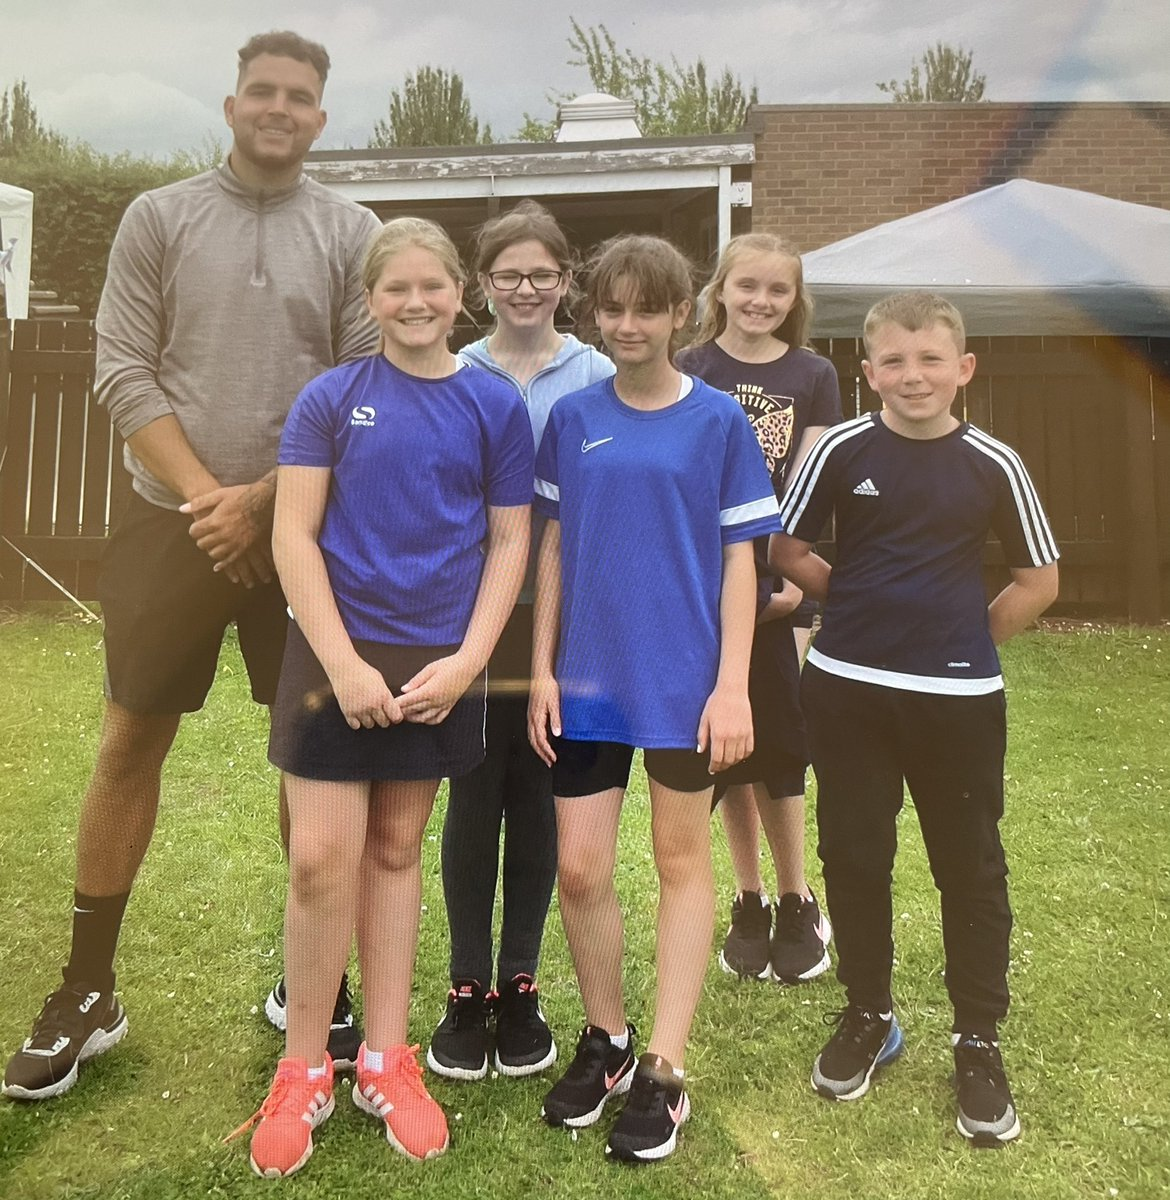 RT @StCharlesMeasha: Well done to the yellow team who won their hockey tournament and the blue team who were the kwik cricket winners in @Class5StCharles bubble tournament 👏🏻 👏🏻 🥇